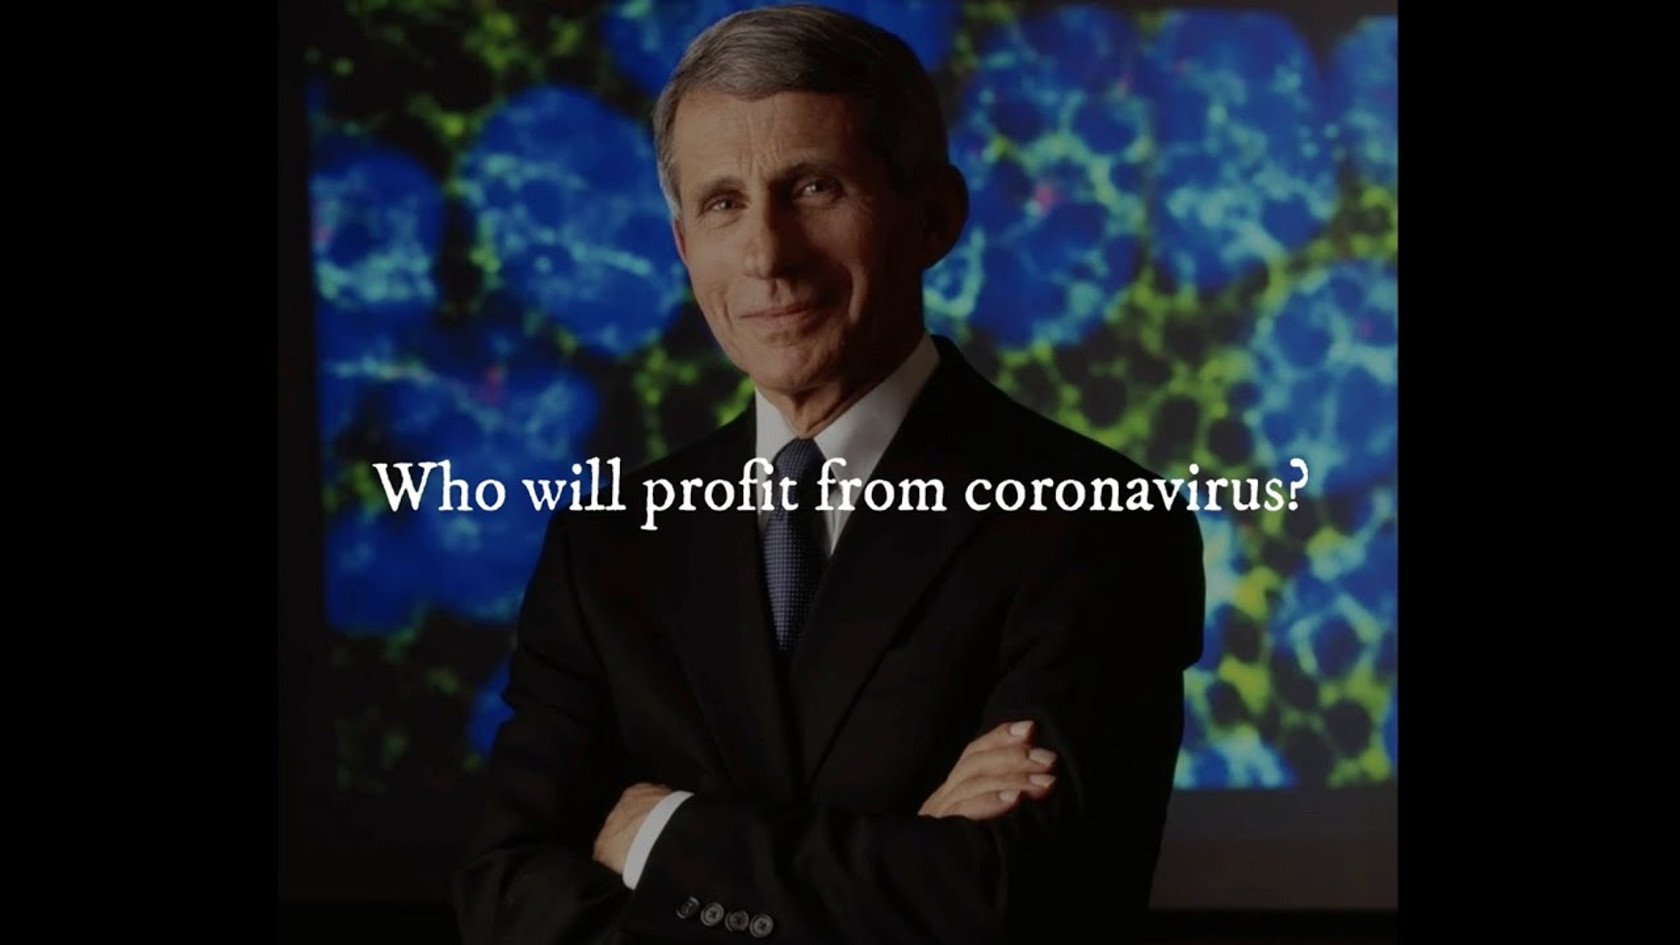 Dr. Fauci and COVID-19 Priorities: Therapeutics Now or Vaccines Later?